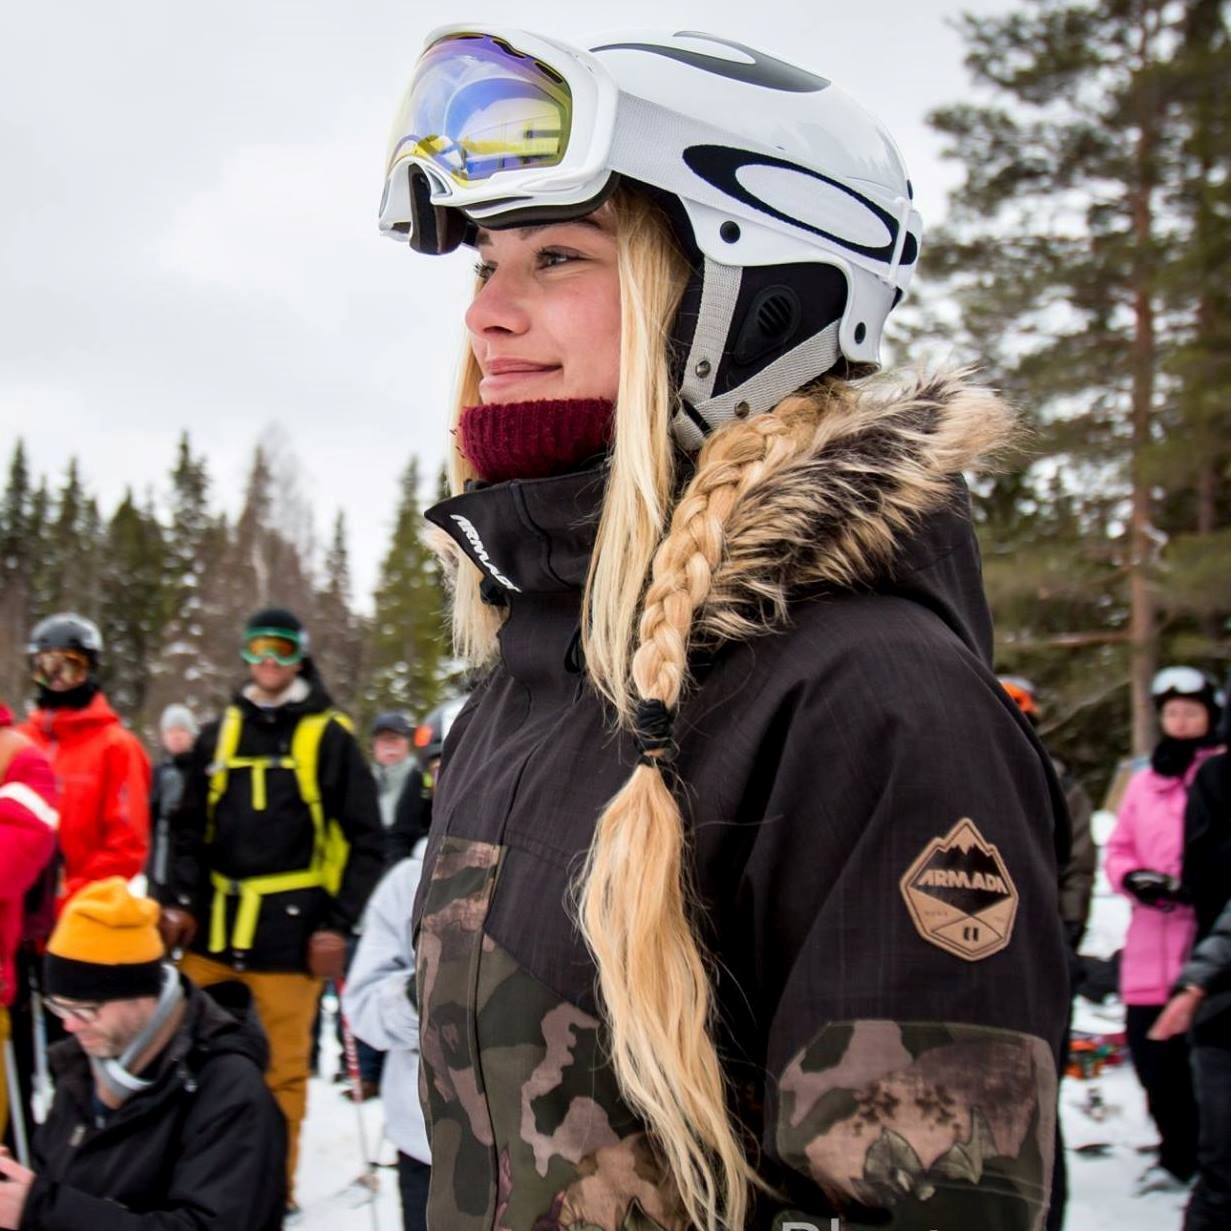 Extreme skier and This Is Nuts Ambassador Ida Ruder